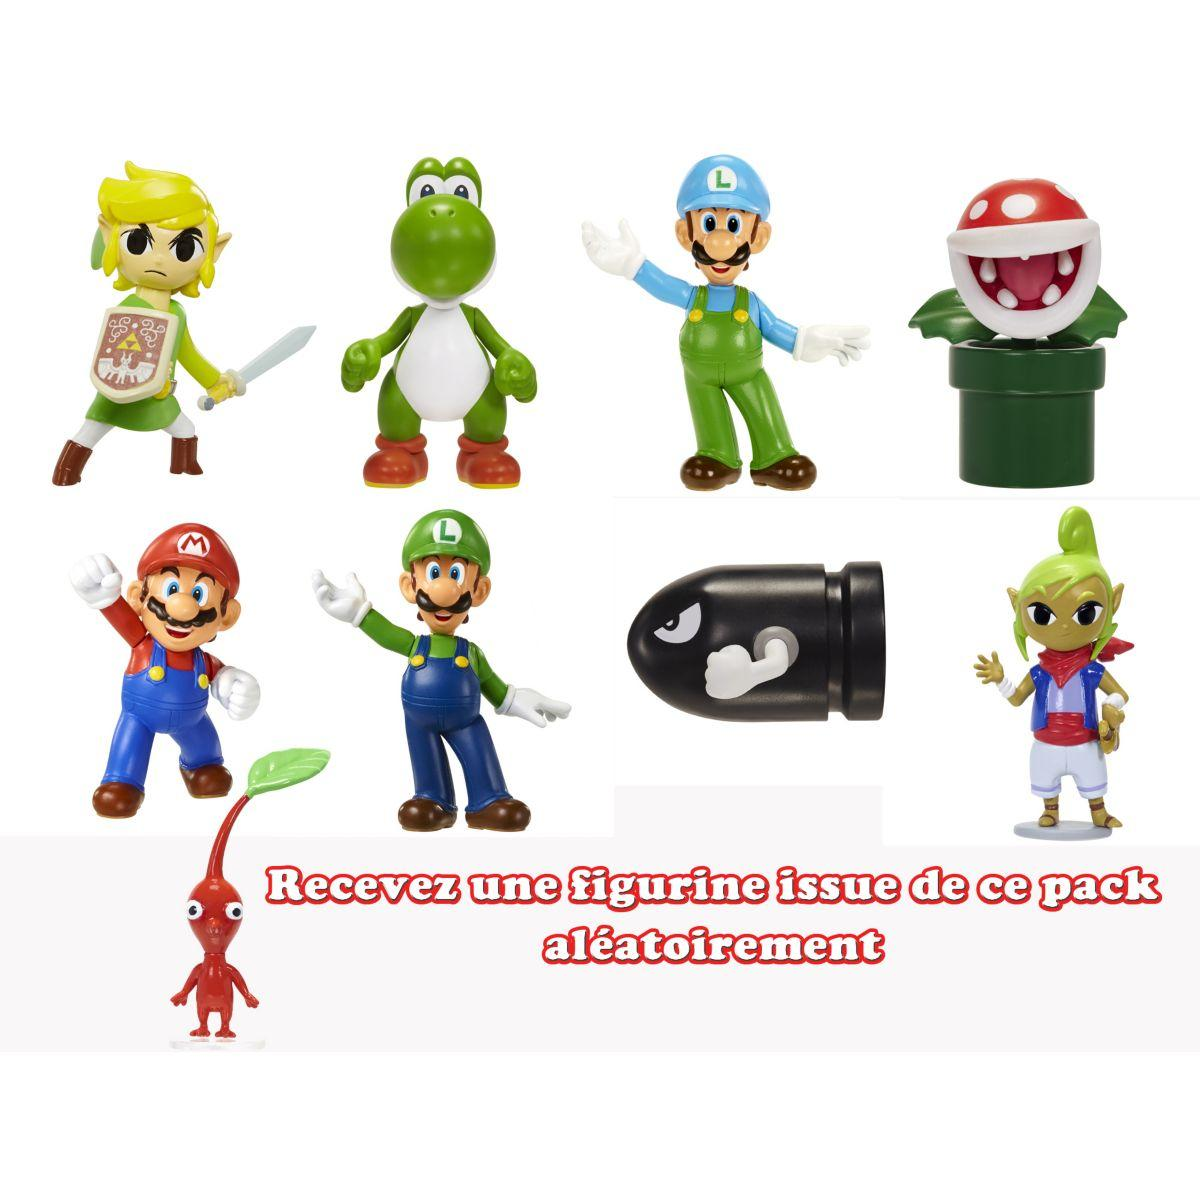 Figurine nintendo mini figurines 6cm assorti s�rie 4 (photo)